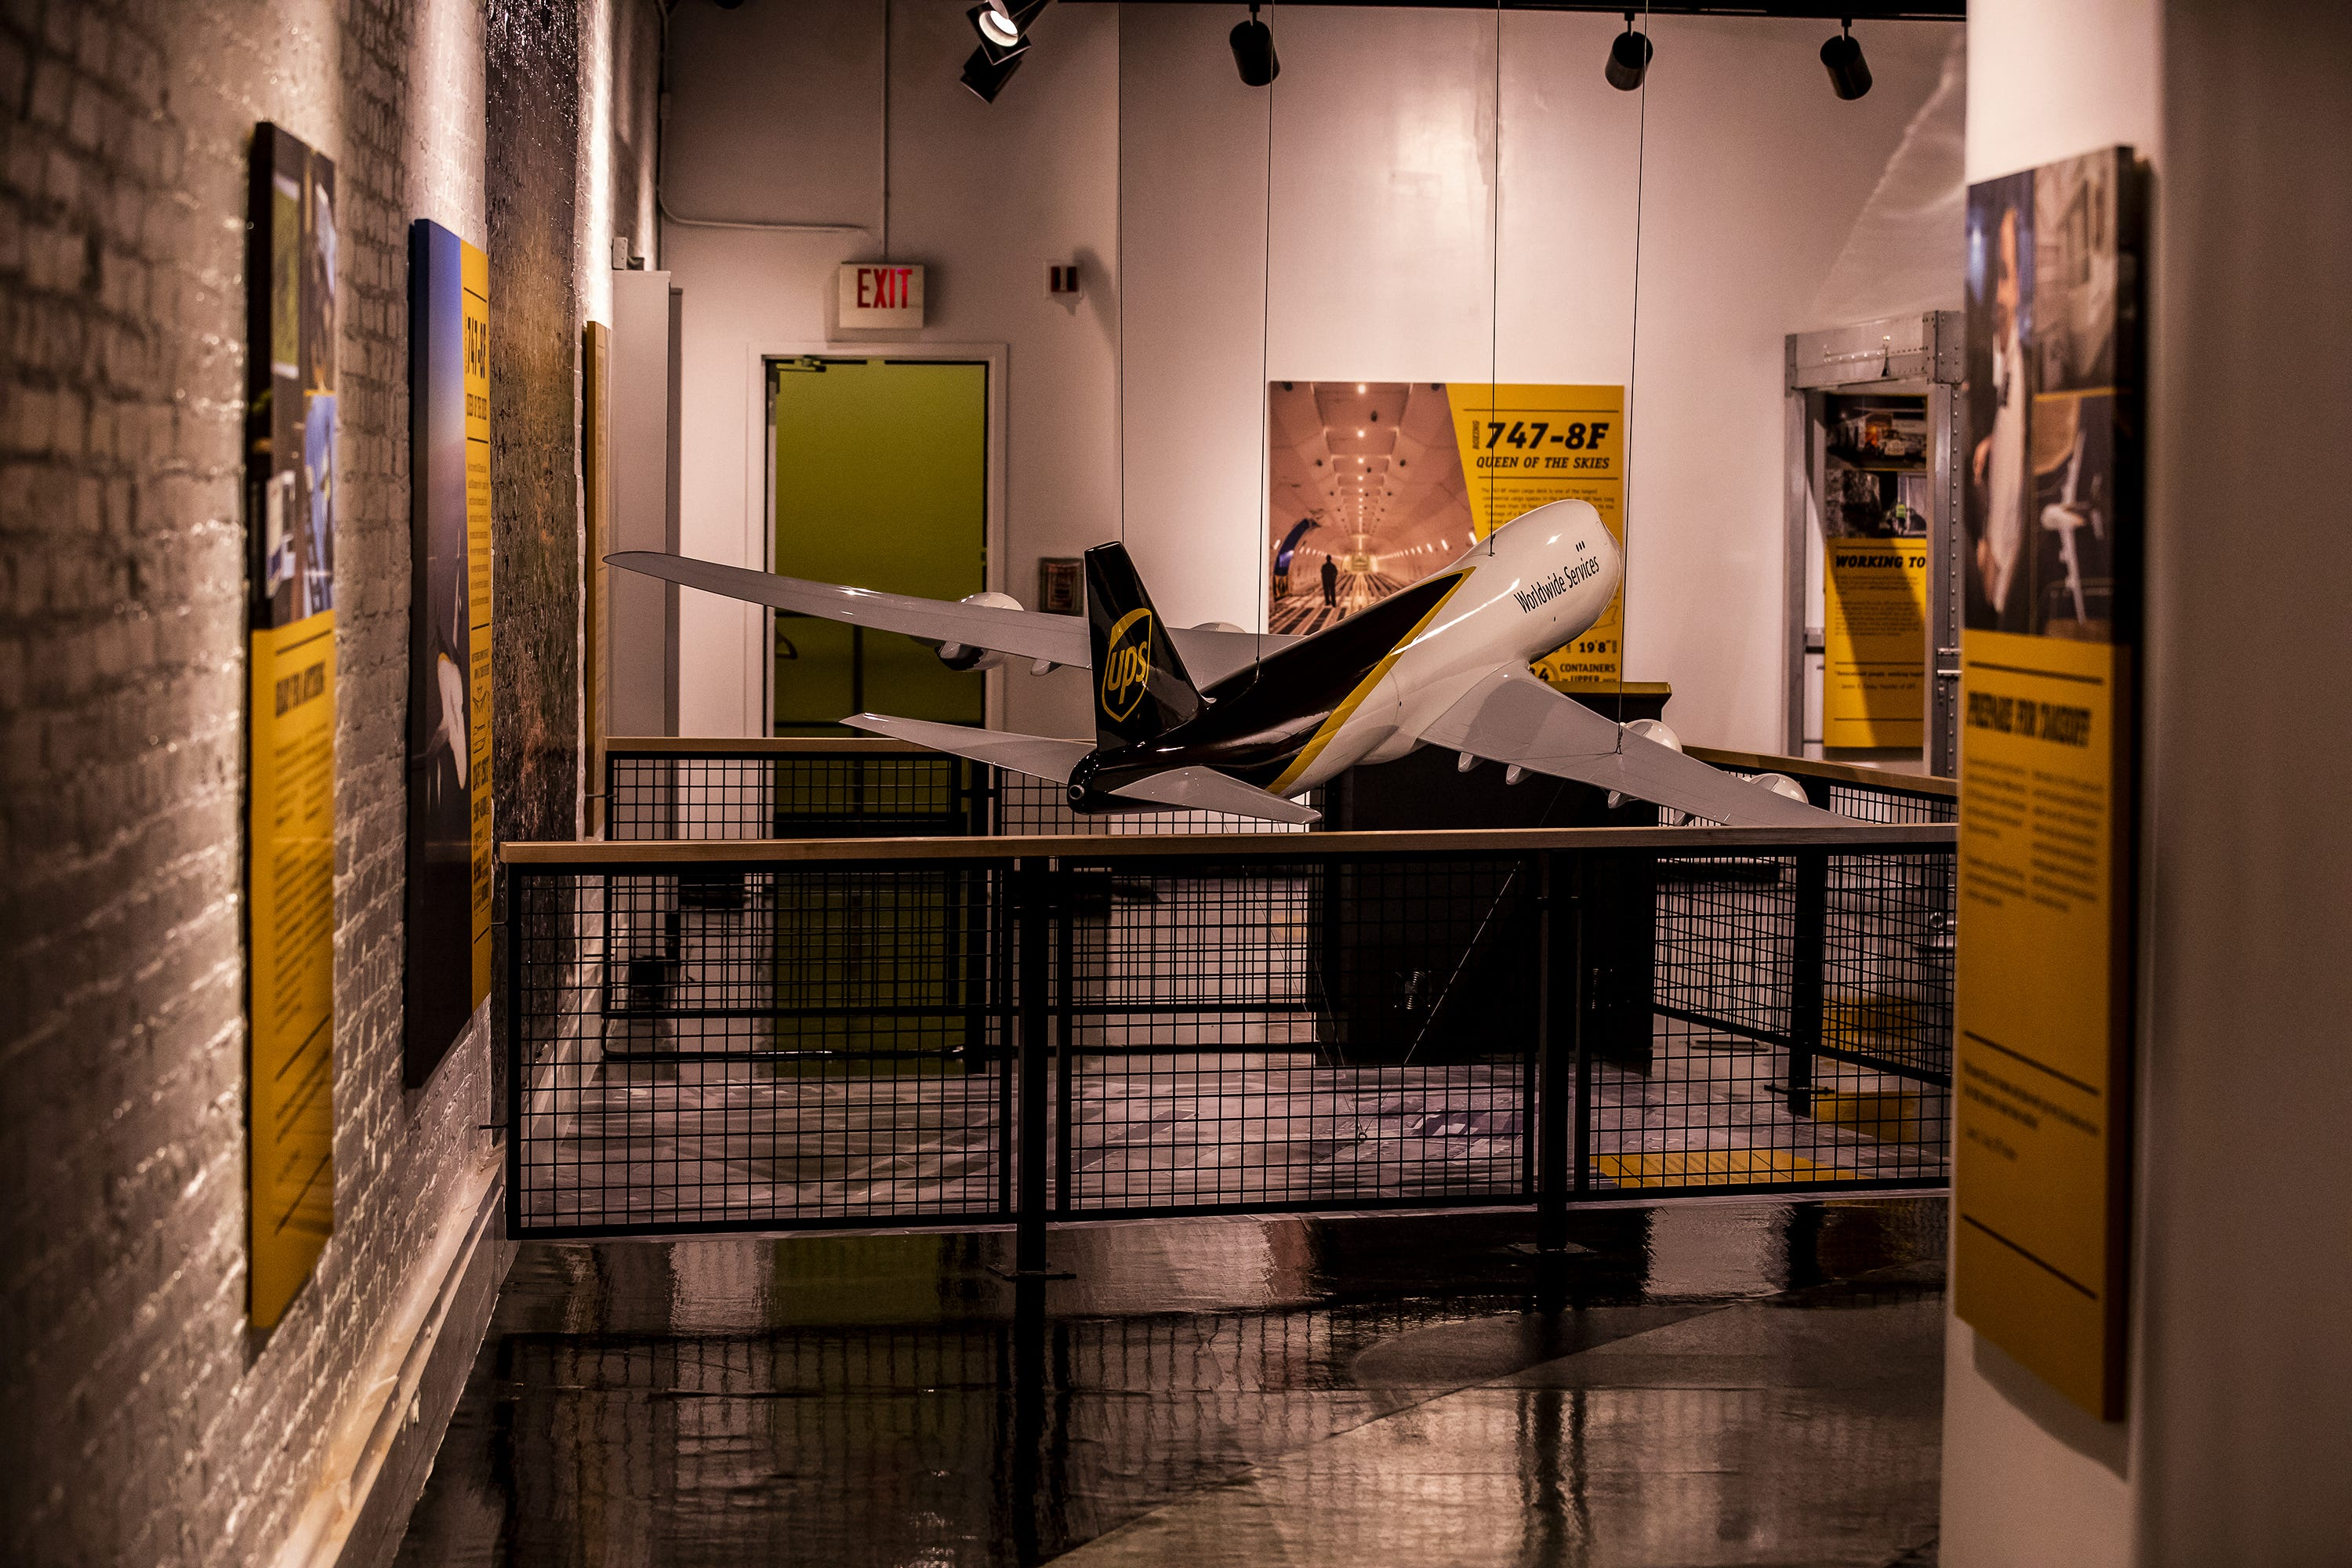 The new 'One World by Air Cargo' exhibit at the Kentucky Science Center includes a large model of a UPS 747-8F airplane. Oct. 15, 2020